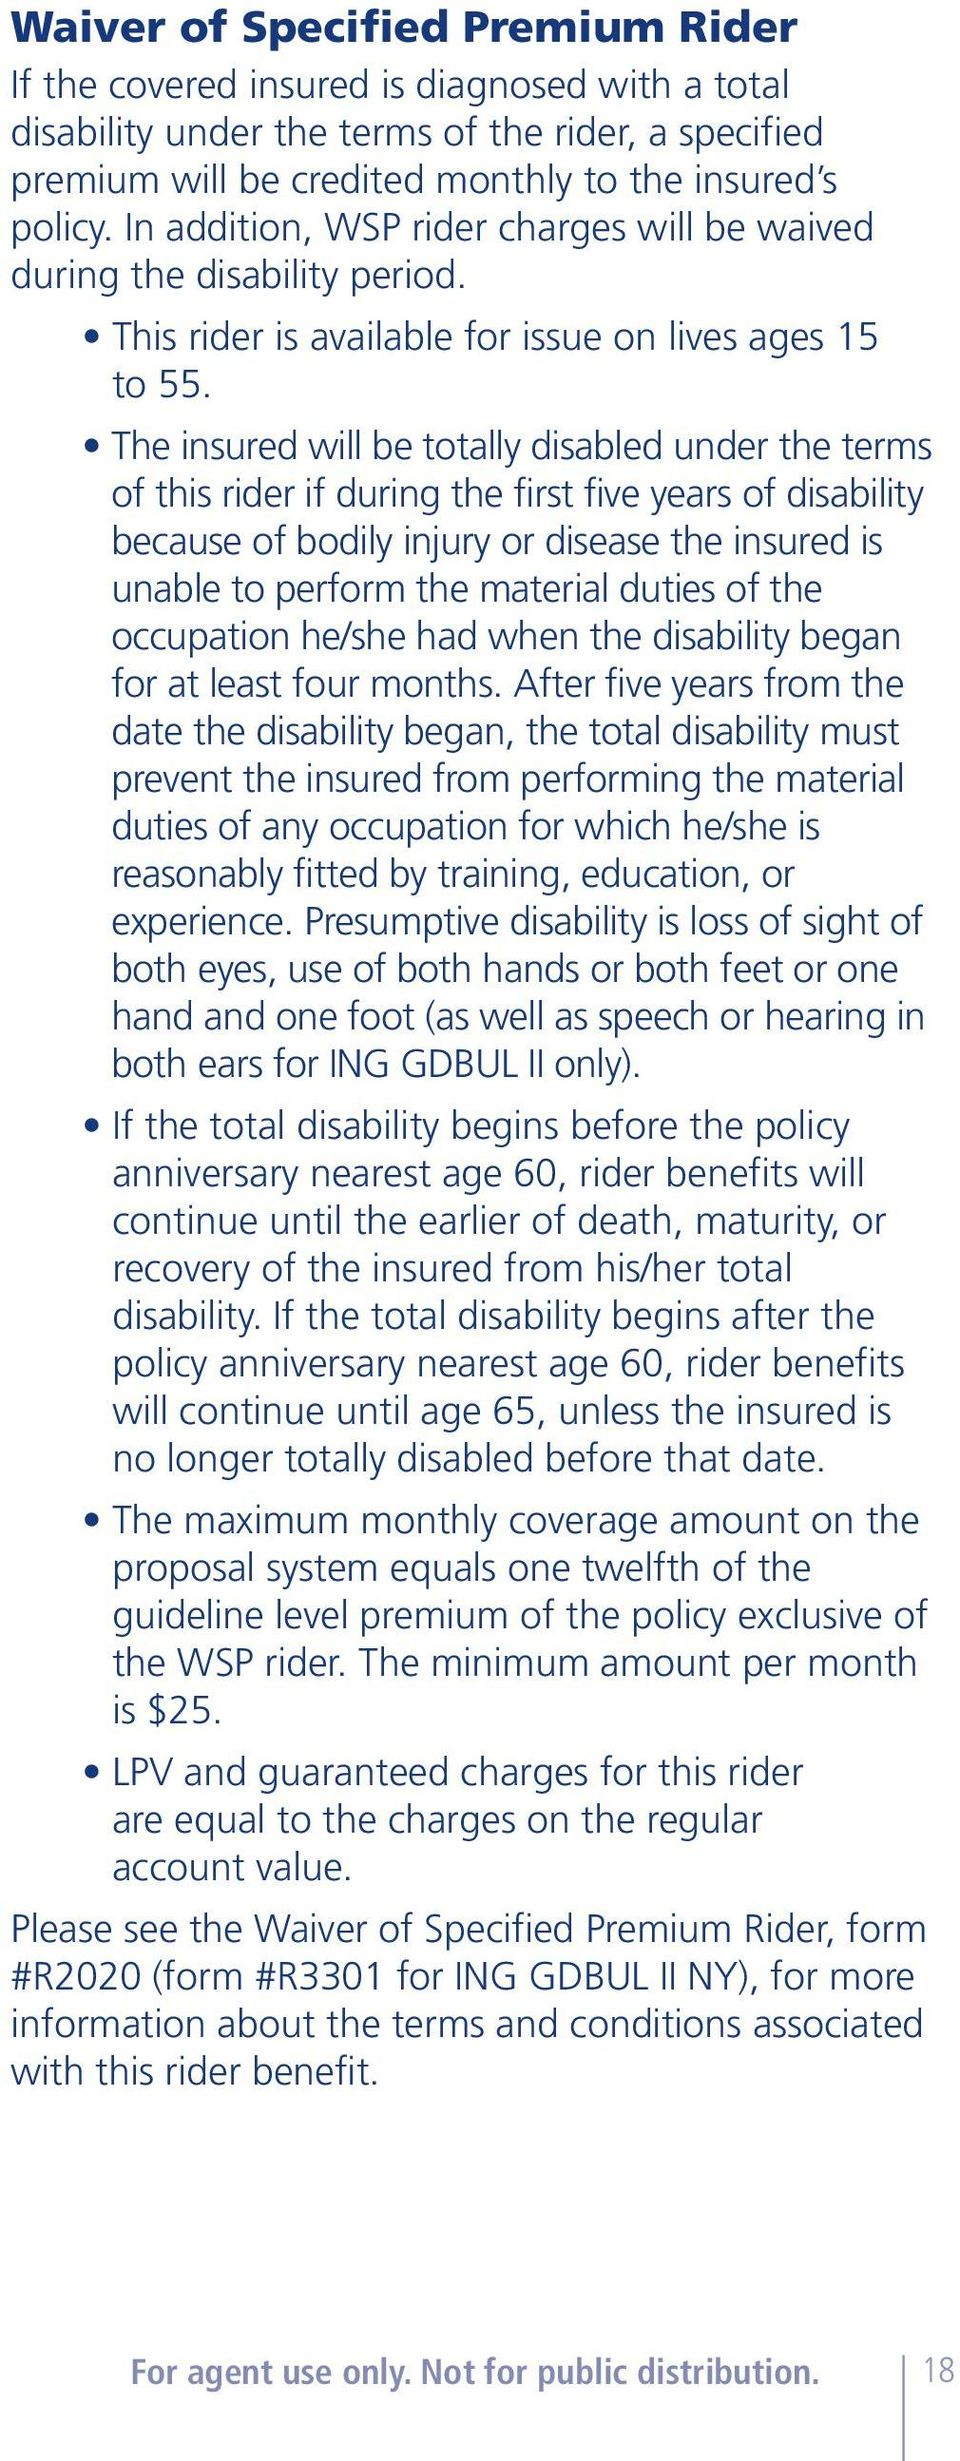 The insured will be totally disabled under the terms of this rider if during the first five years of disability because of bodily injury or disease the insured is unable to perform the material